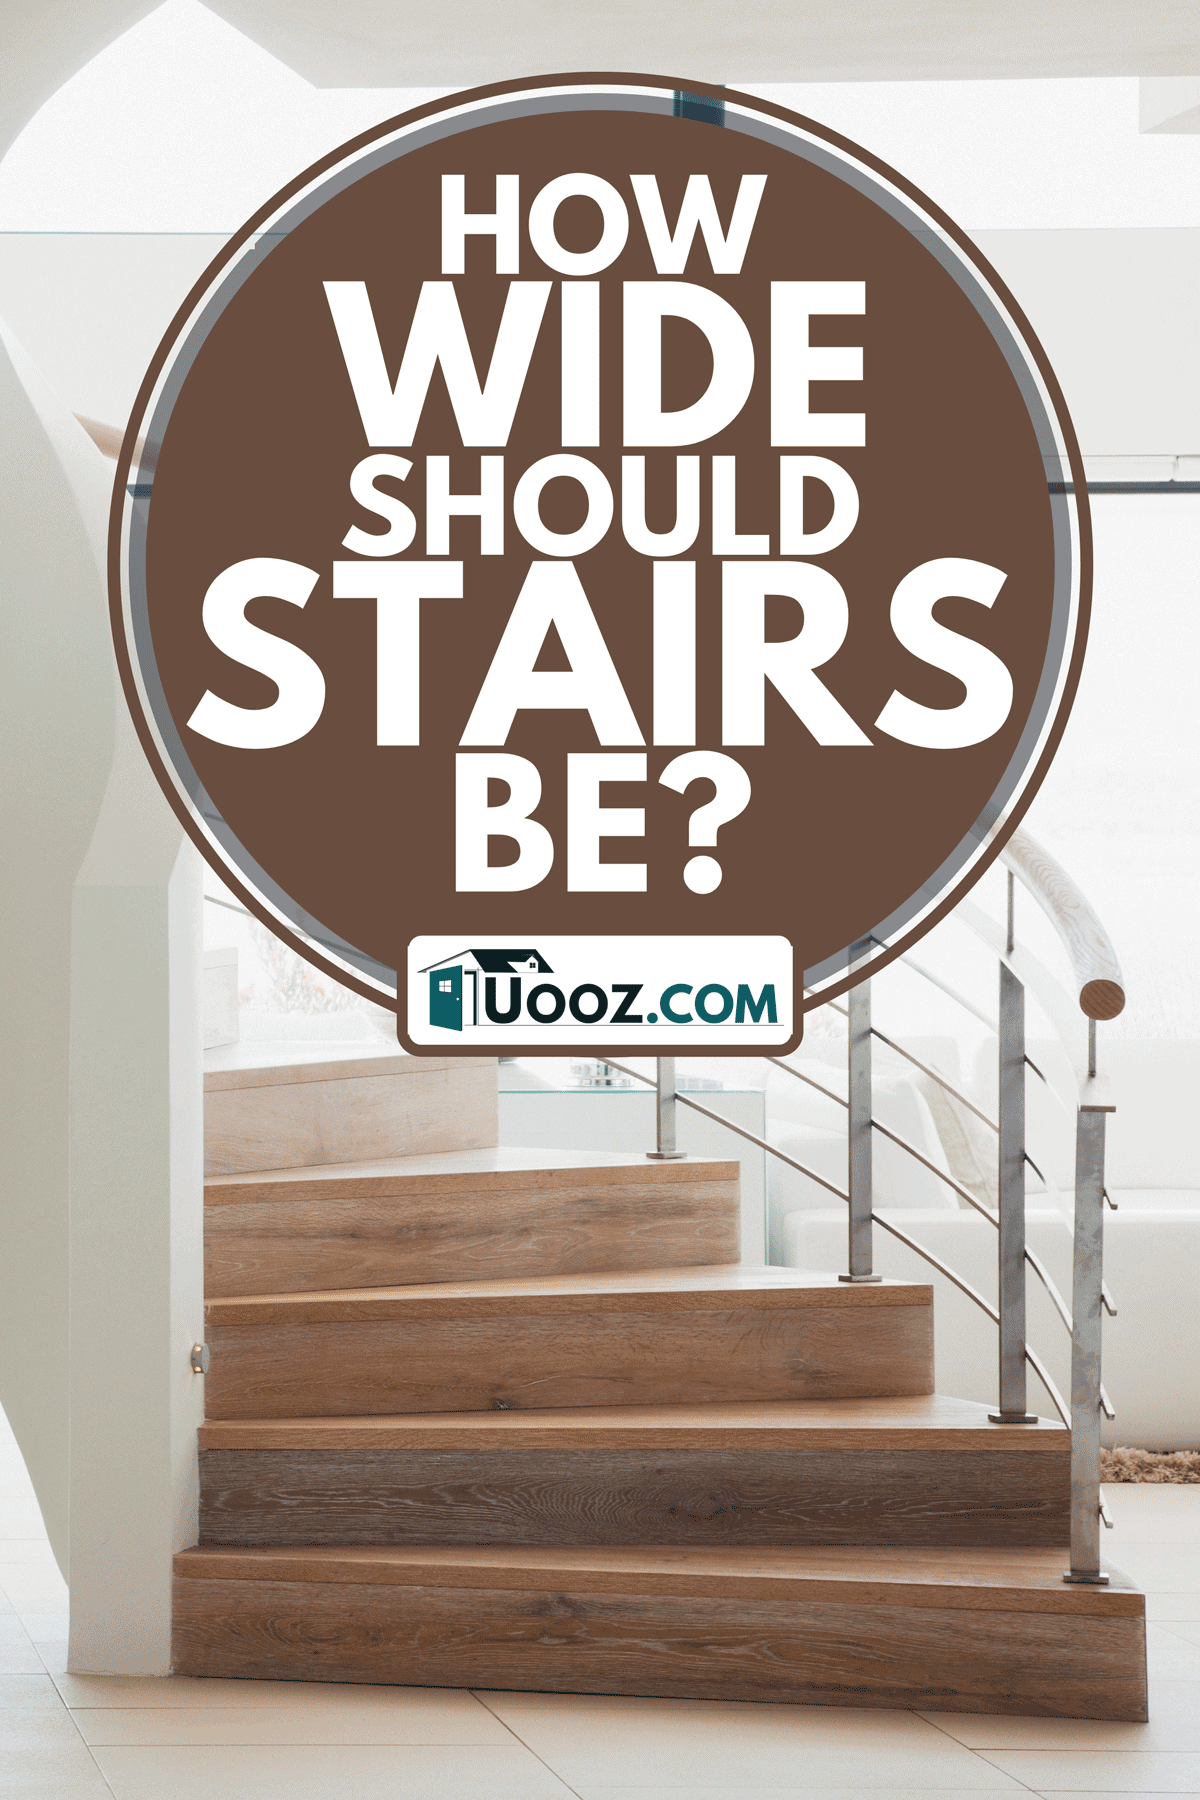 A curving staircase in modern home, How Wide Should Stairs Be?